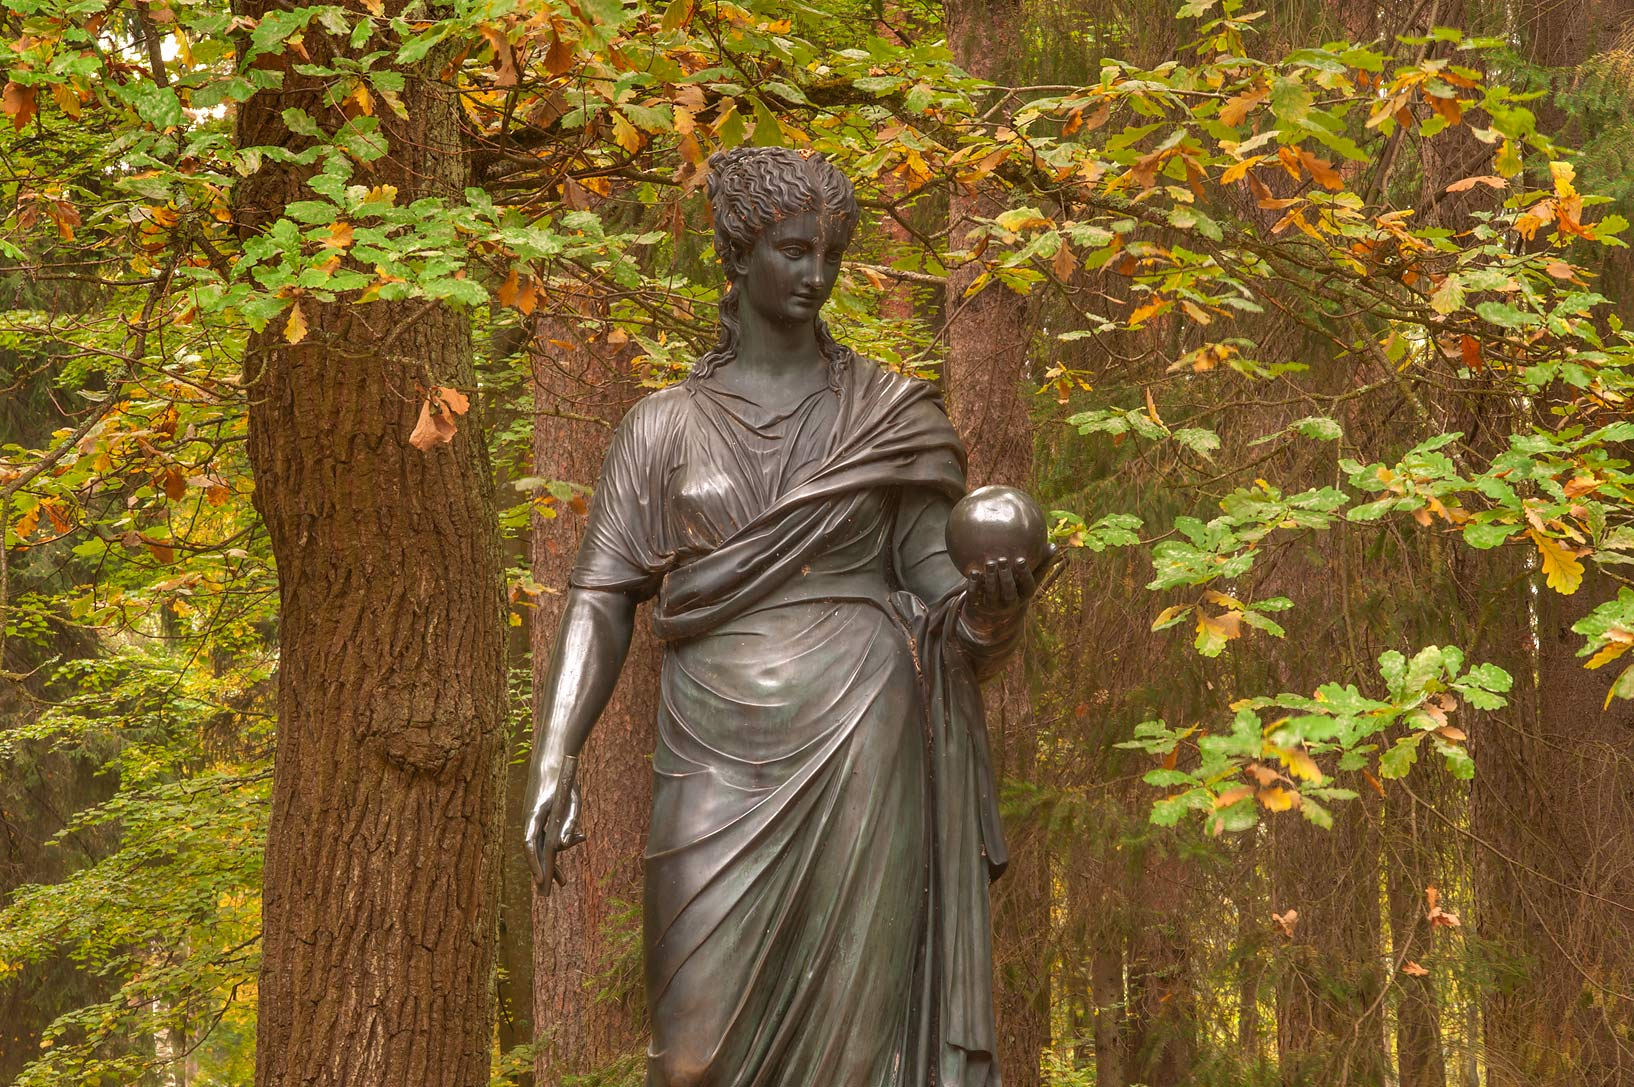 Sculpture of a Greek muse holding a bronze ball...suburb of St.Petersburg, Russia